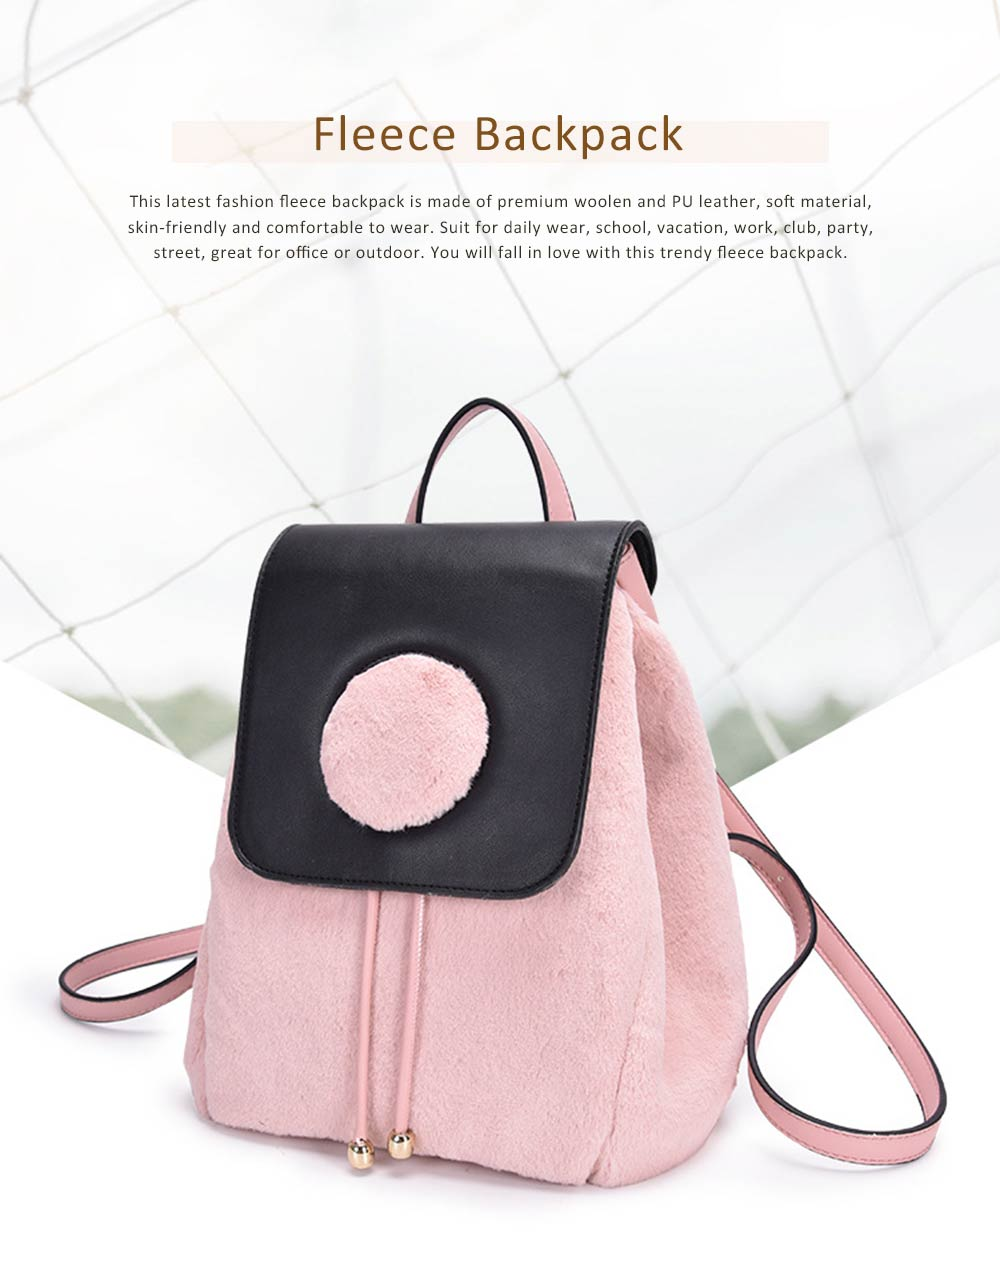 Cute Casual PU Woolen PU Leather Rucksack Shoulder Bag Women Fashion Accessories Elegant Drawstring Travel Backpack 0